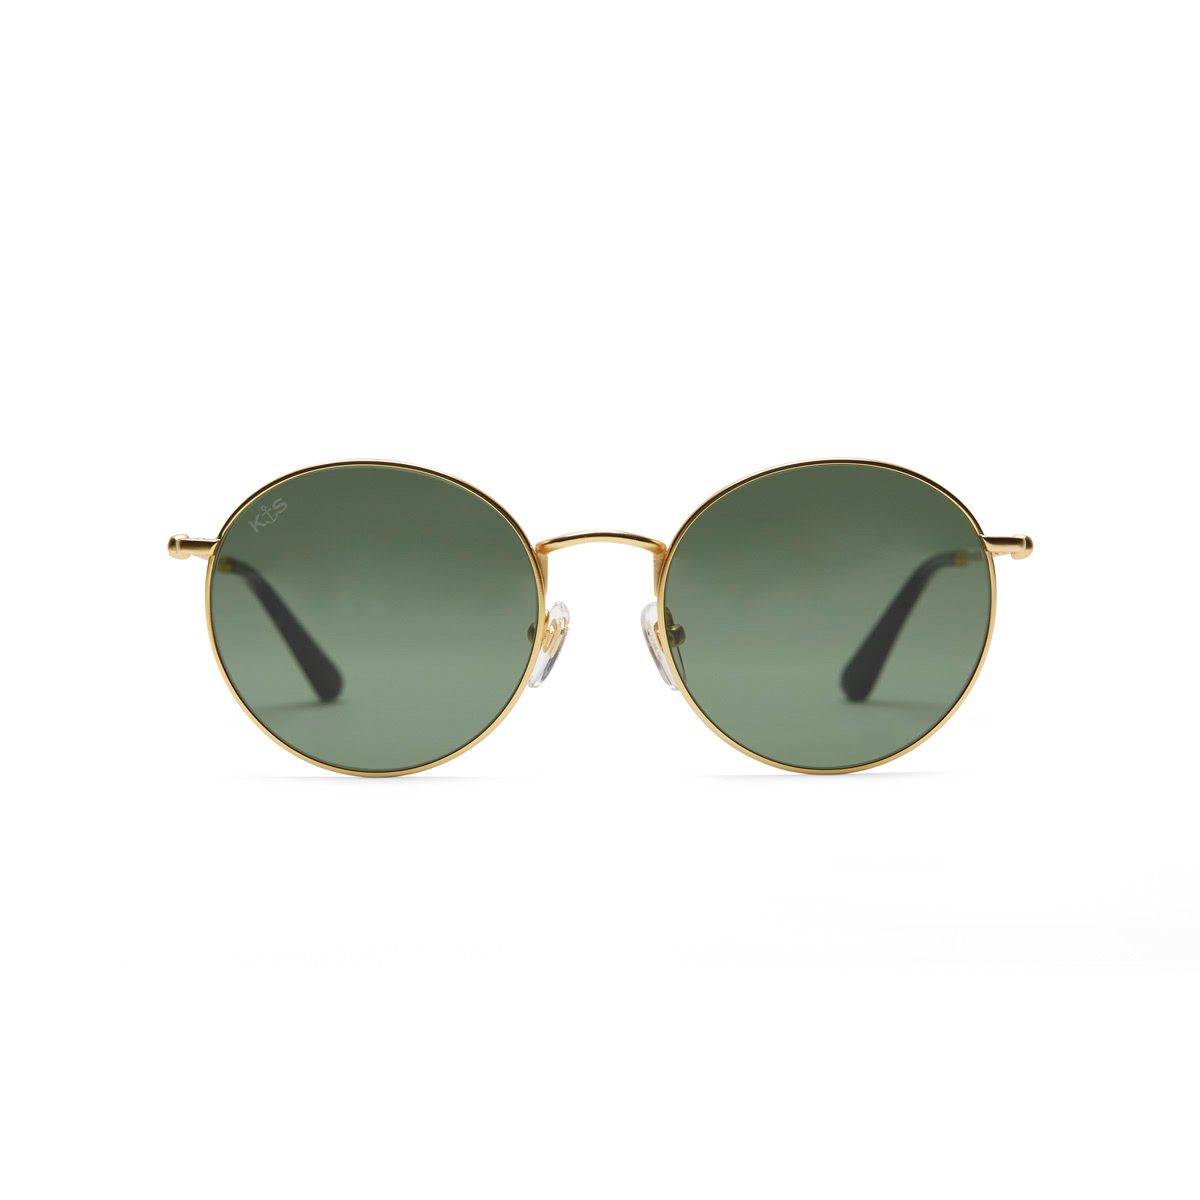 London Gold Green Sonnenbrillen | Kapten & Son